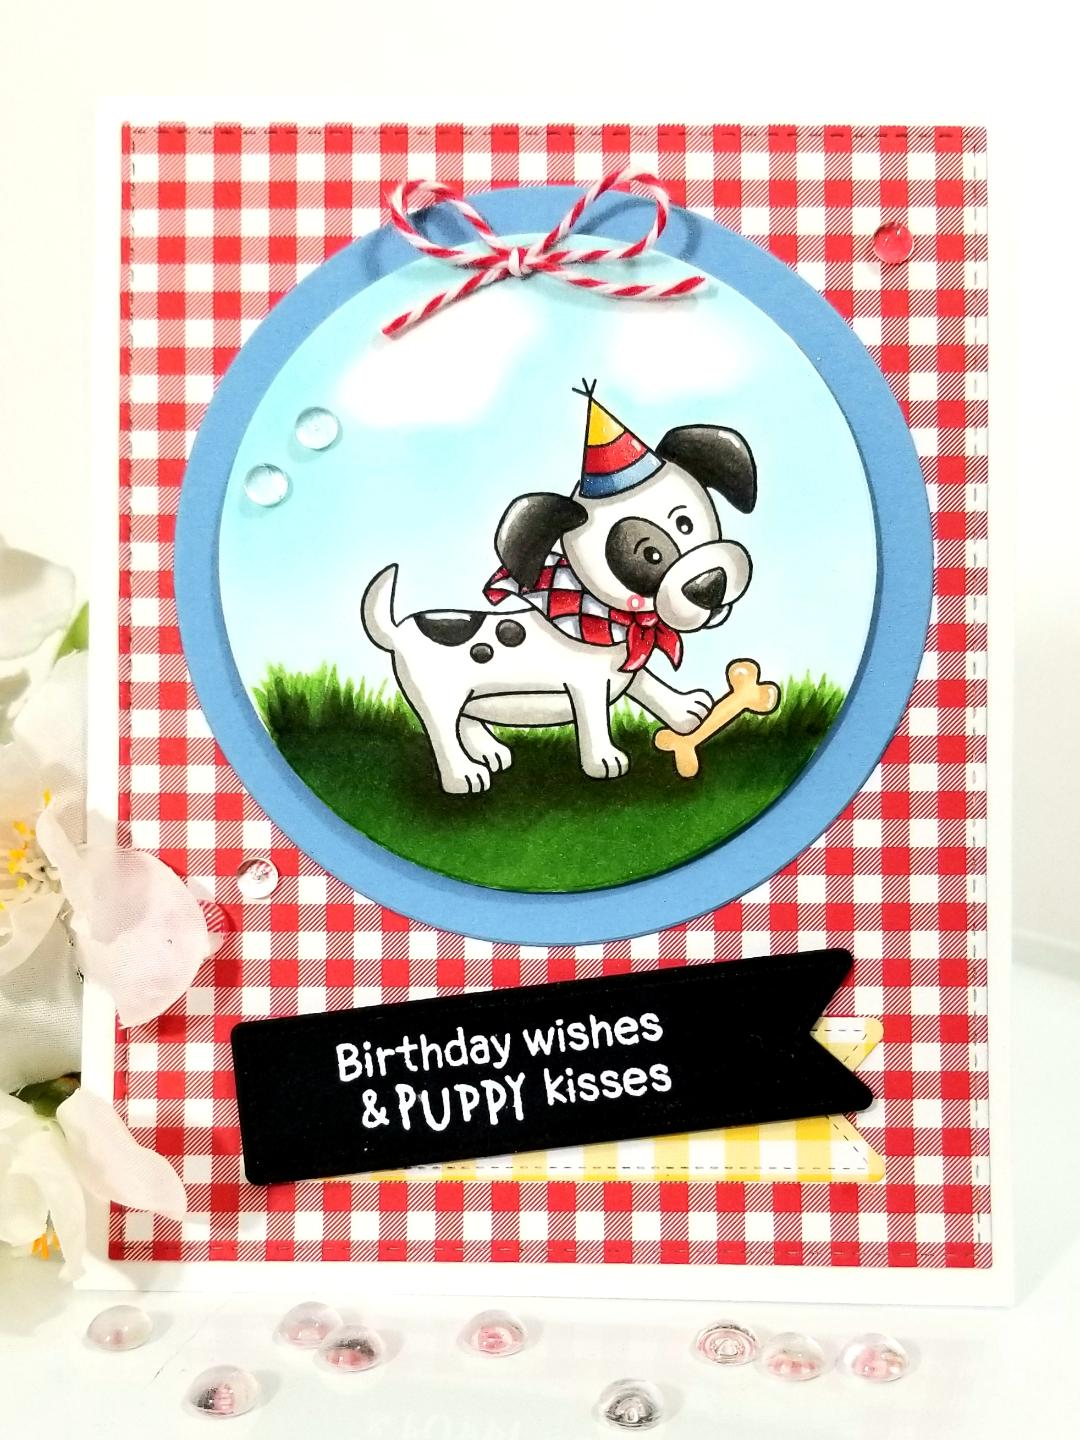 Birthday Wishes & Puppy Kisses Card by February Guest Designer Lori U'ren | Puppy Playtime Stamp Set by Newton's Nook Designs #newtonsnook #handmade